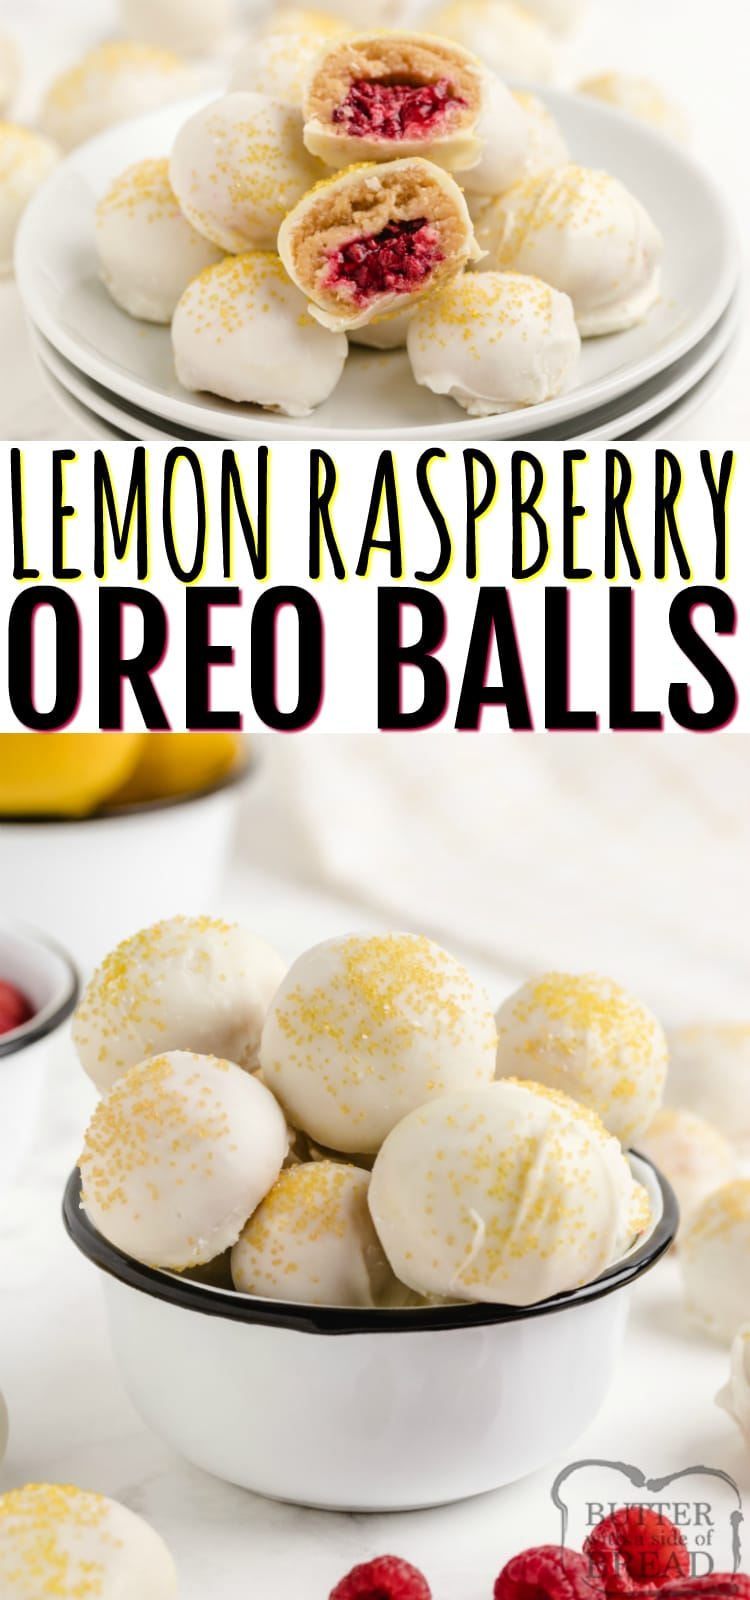 Lemon Raspberry Lemon Oreo Balls easily come together with only four ingredients and they have the most wonderful flavor! Bite-sized, no bake dessert made with Lemon Oreos and fresh raspberries!